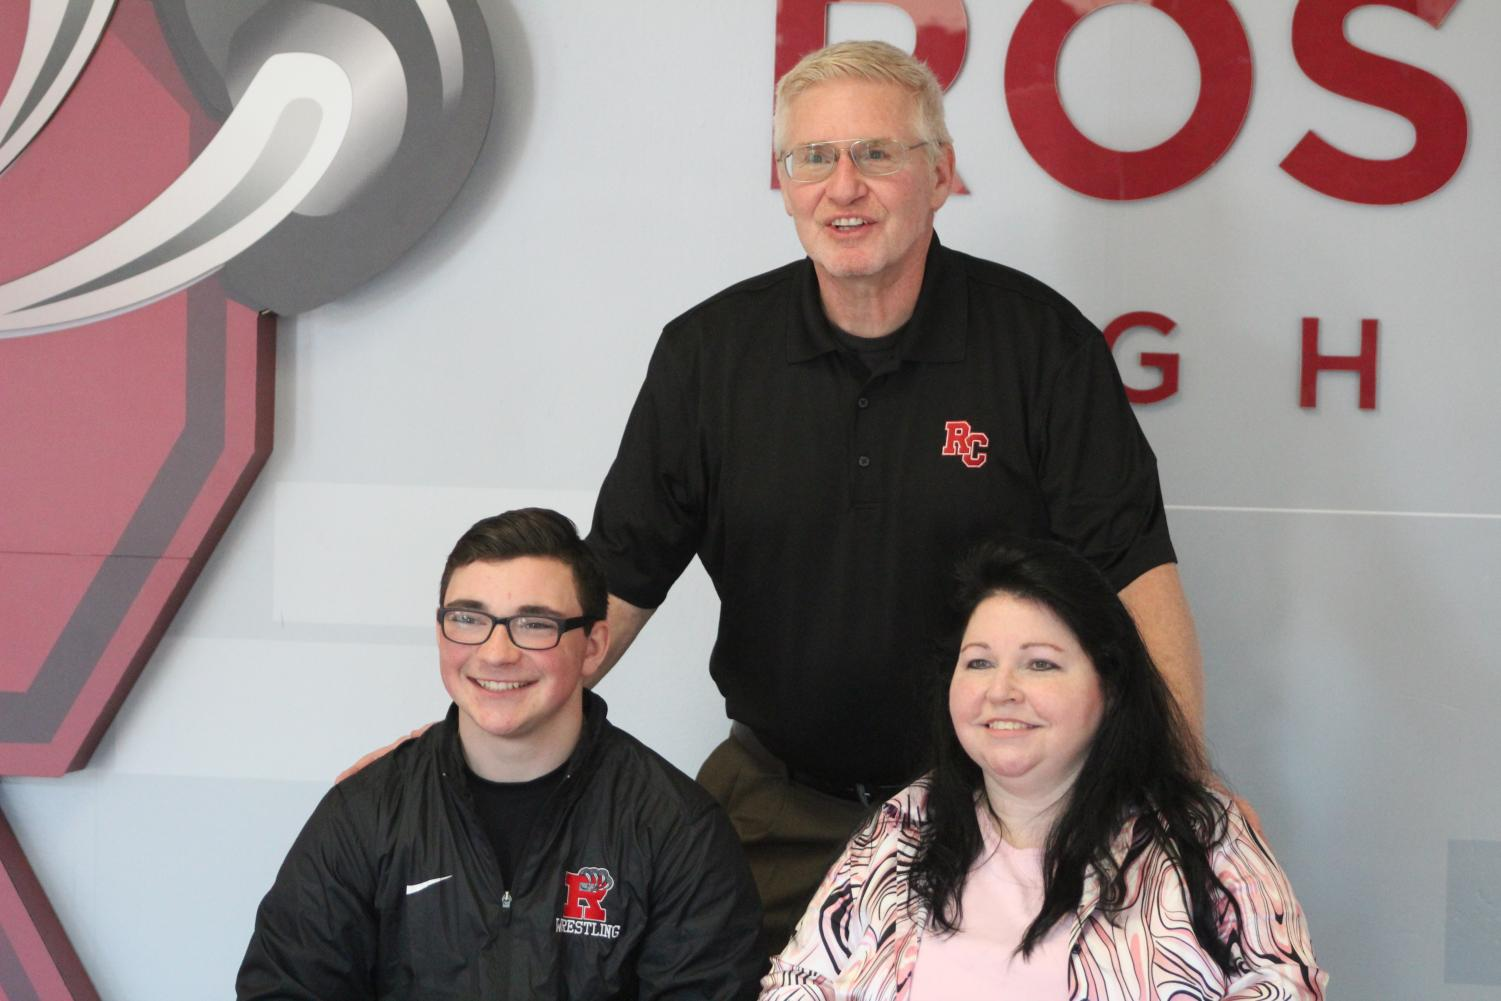 Mohn posing with his mom and new coach after signing with Rochester.